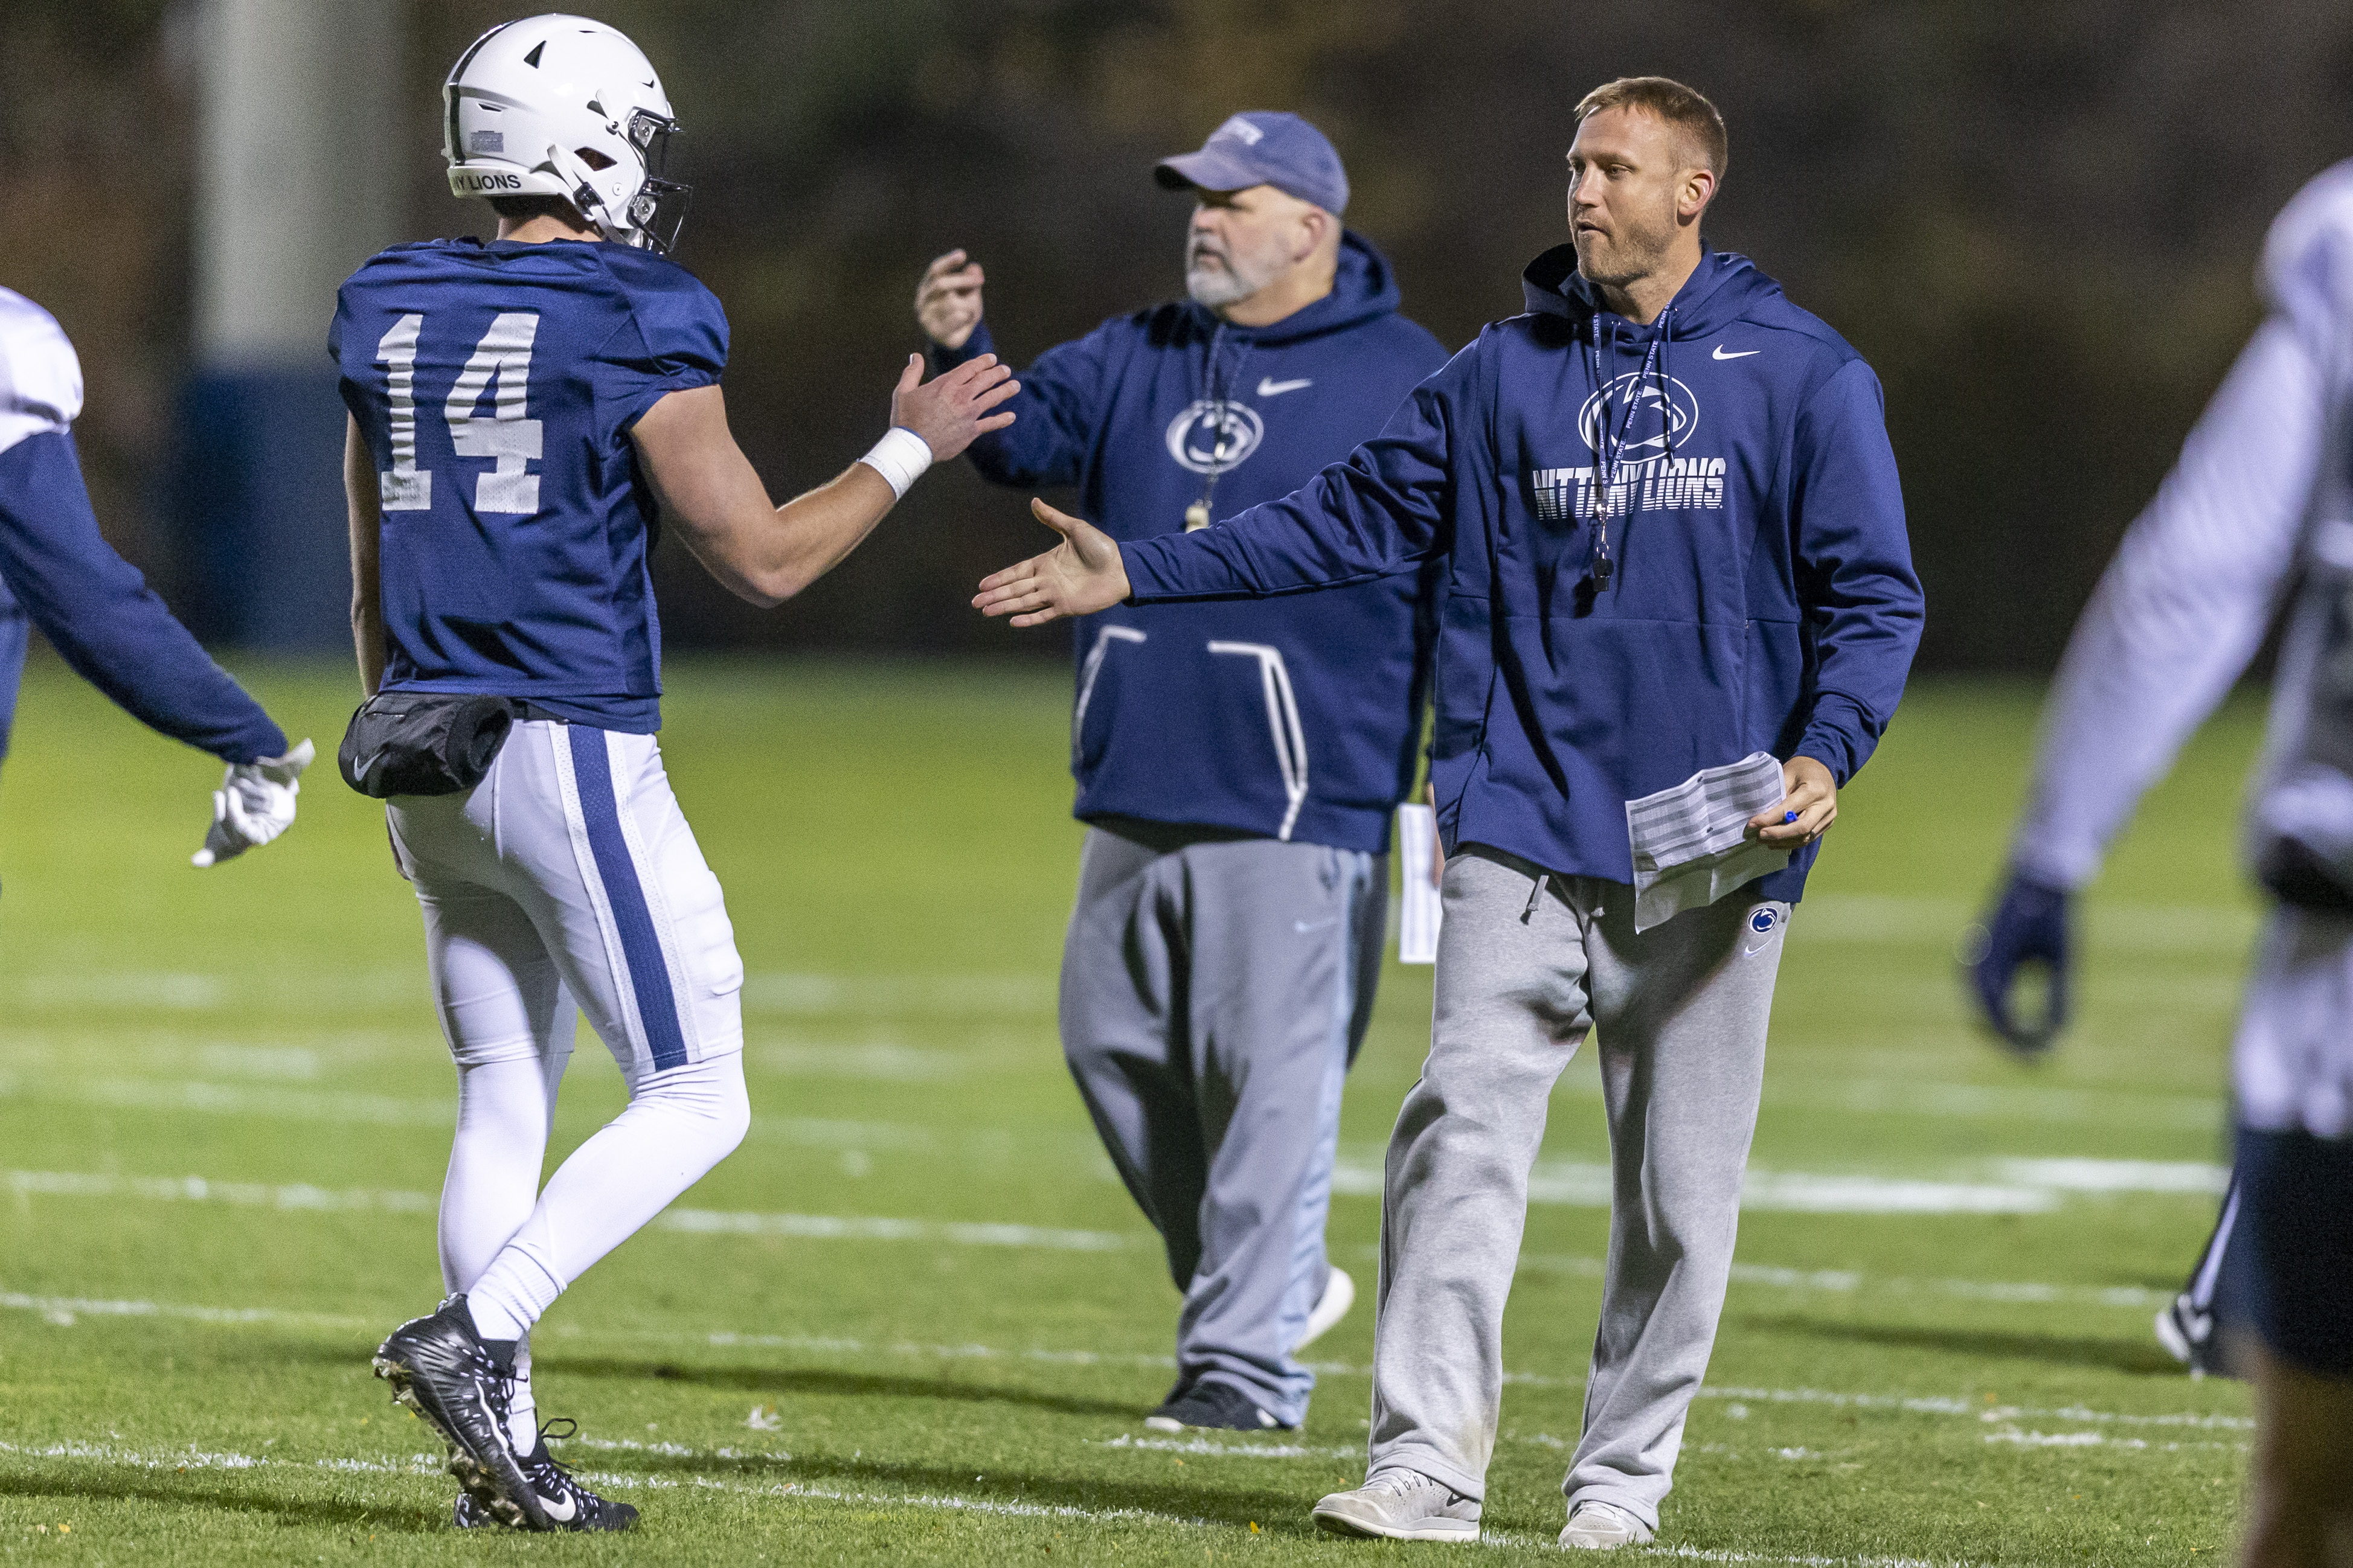 Penn State's Ricky Rahne officially named Old Dominion's new head coach